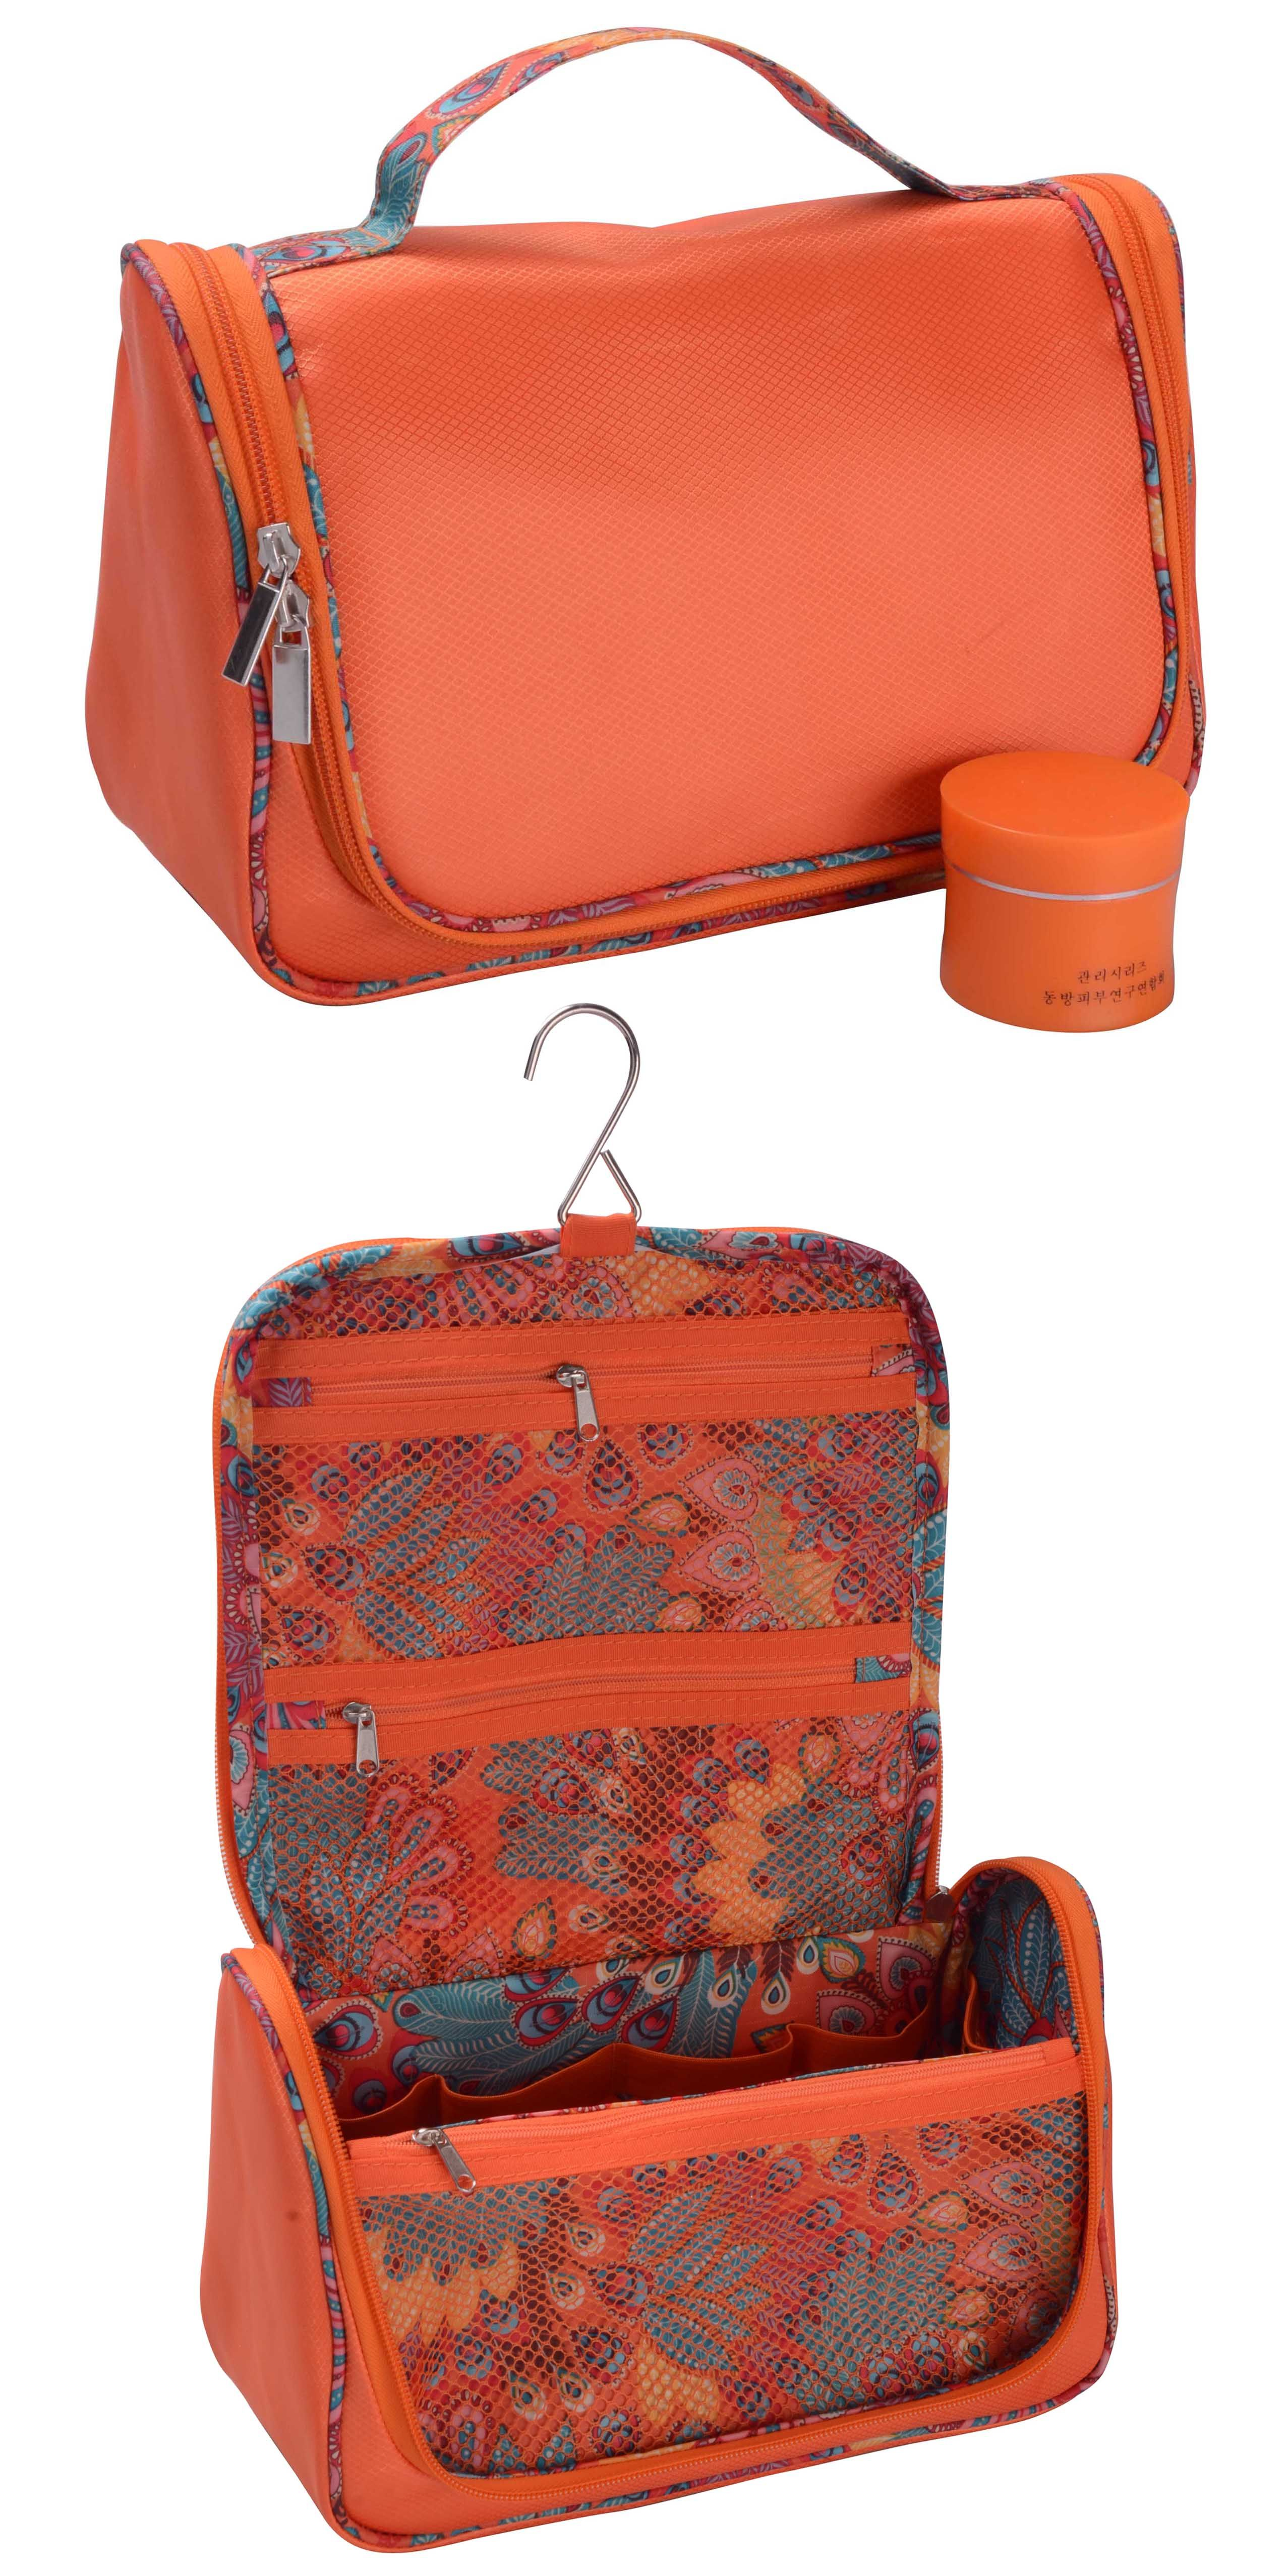 High grade hanging toiletry bag, smart shape and style